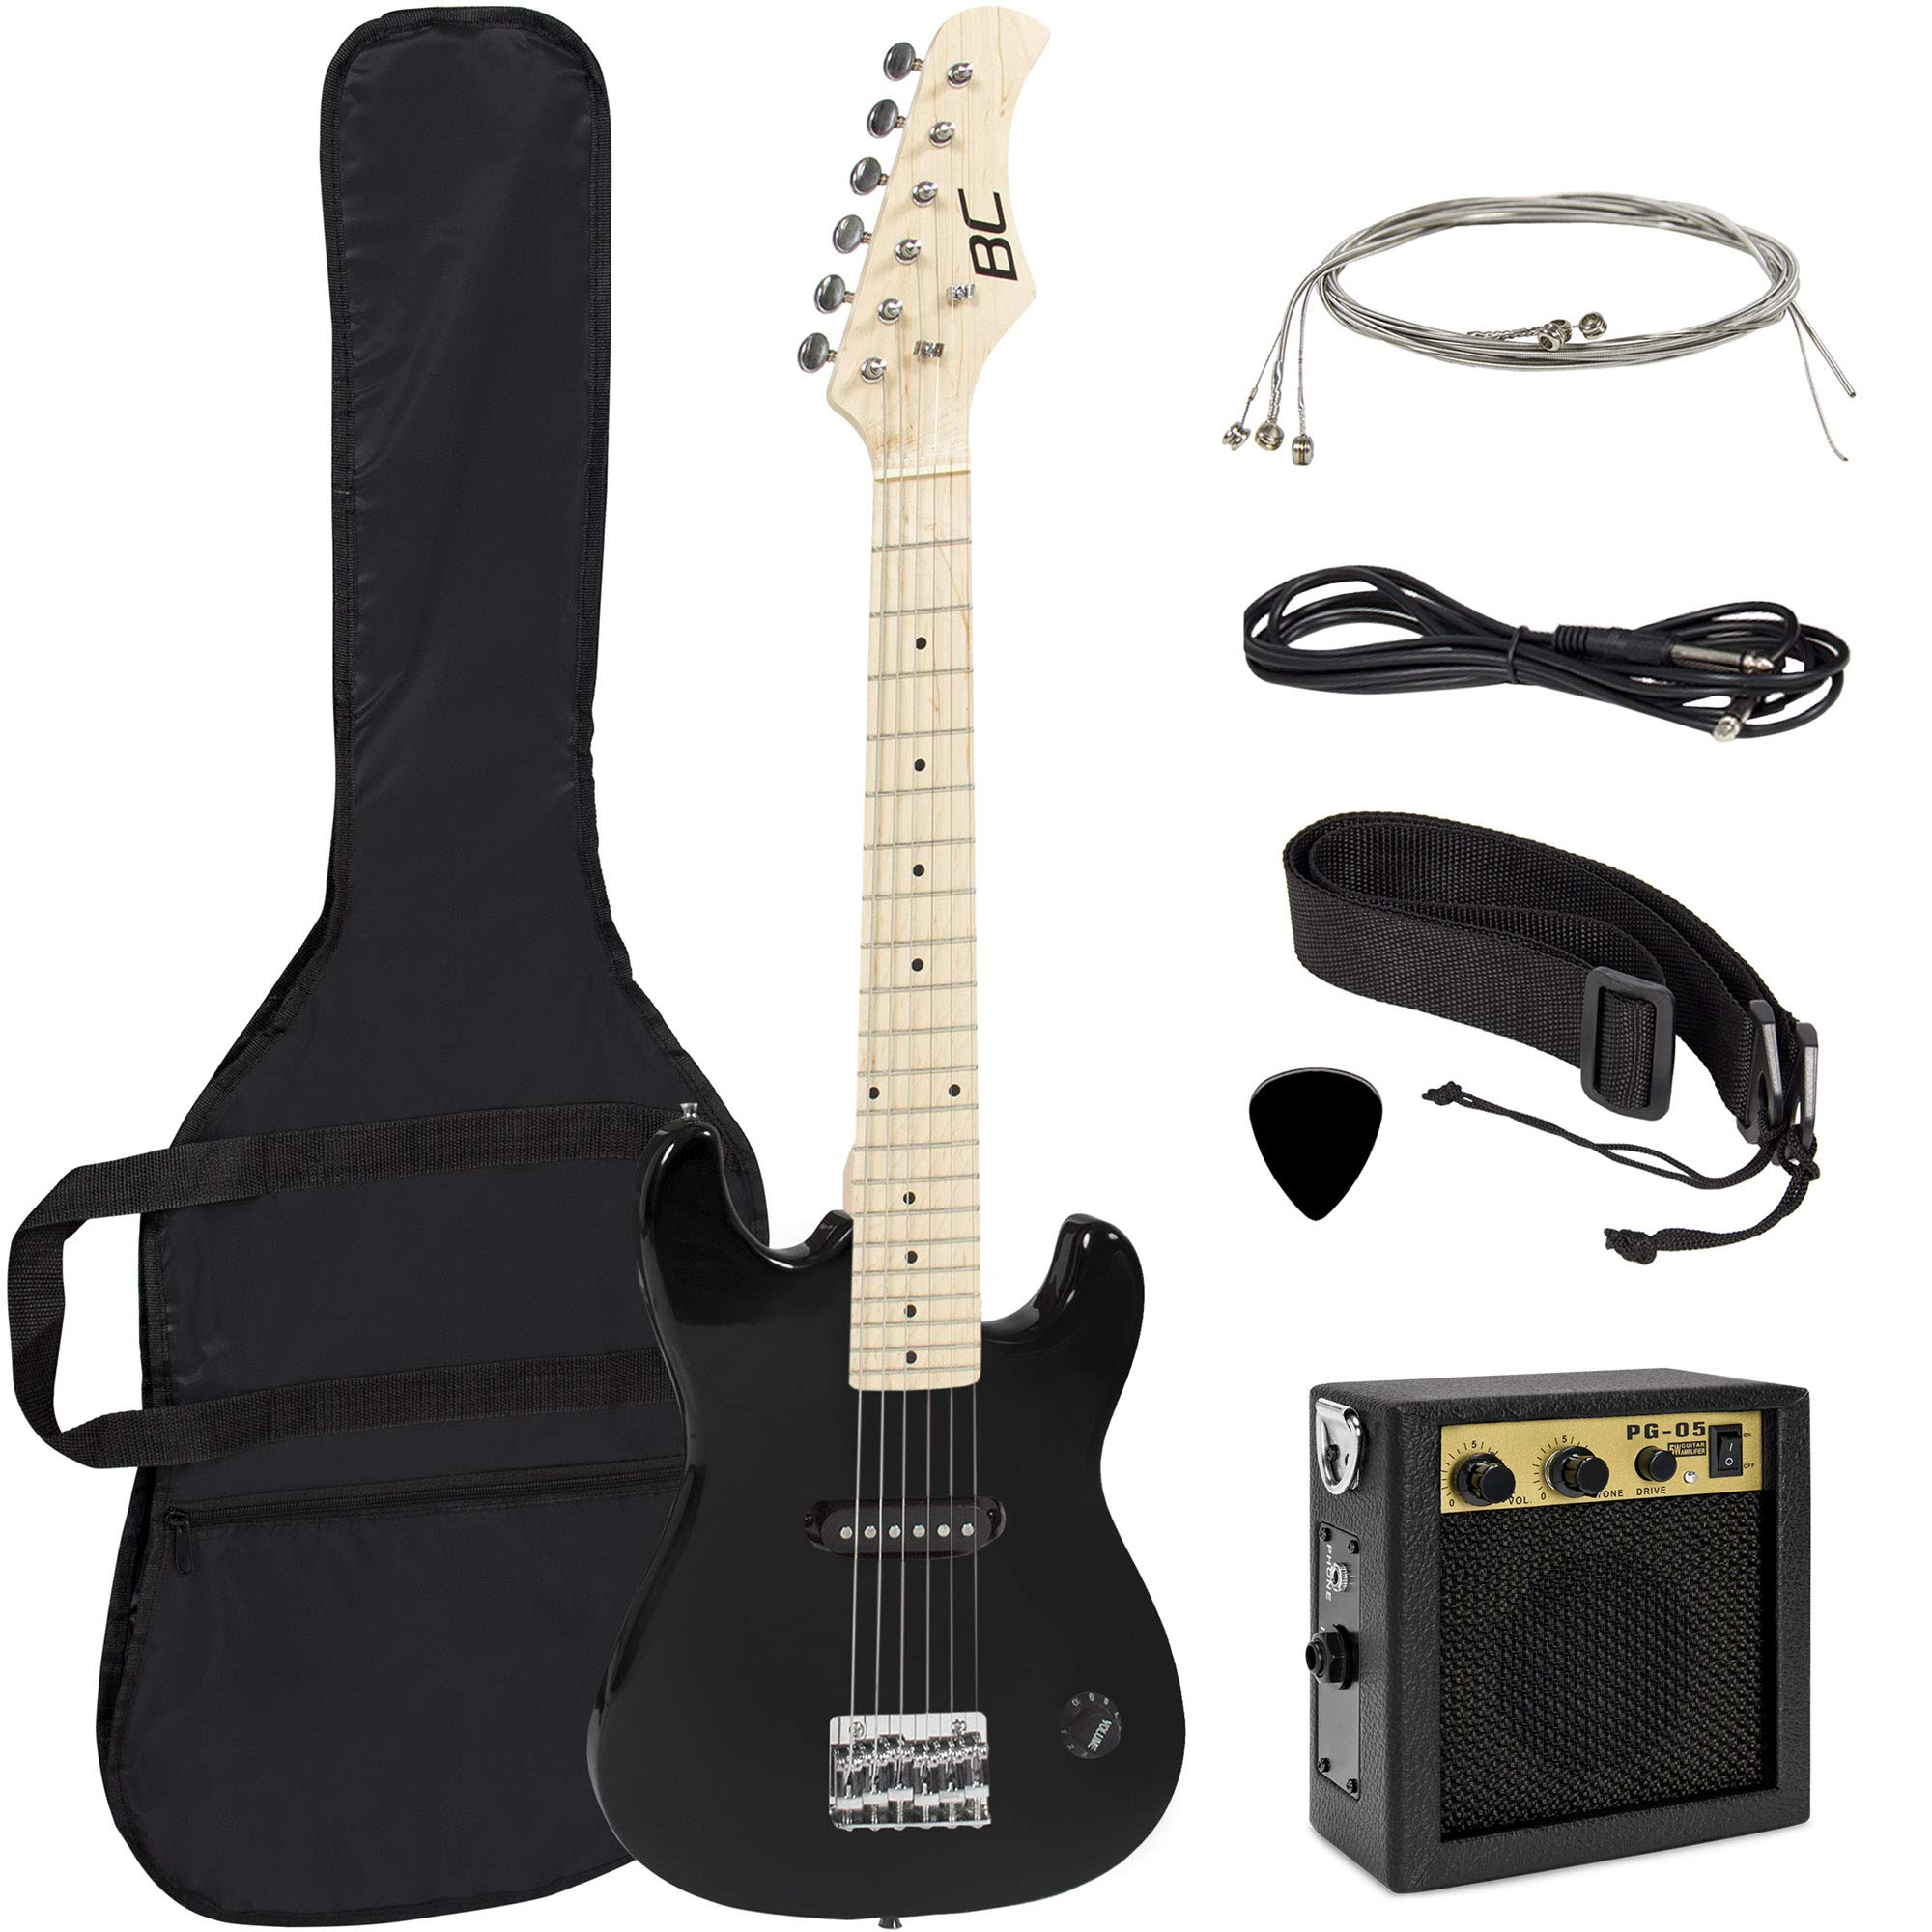 Best Choice Products 30in Kids 6-String Electric Guitar Musical Instrument Starter Kit w/ 5W Amplifier, Shoulder Straps, Nylon Carrying Bag, Strings, Picks - Black by Best Choice Products